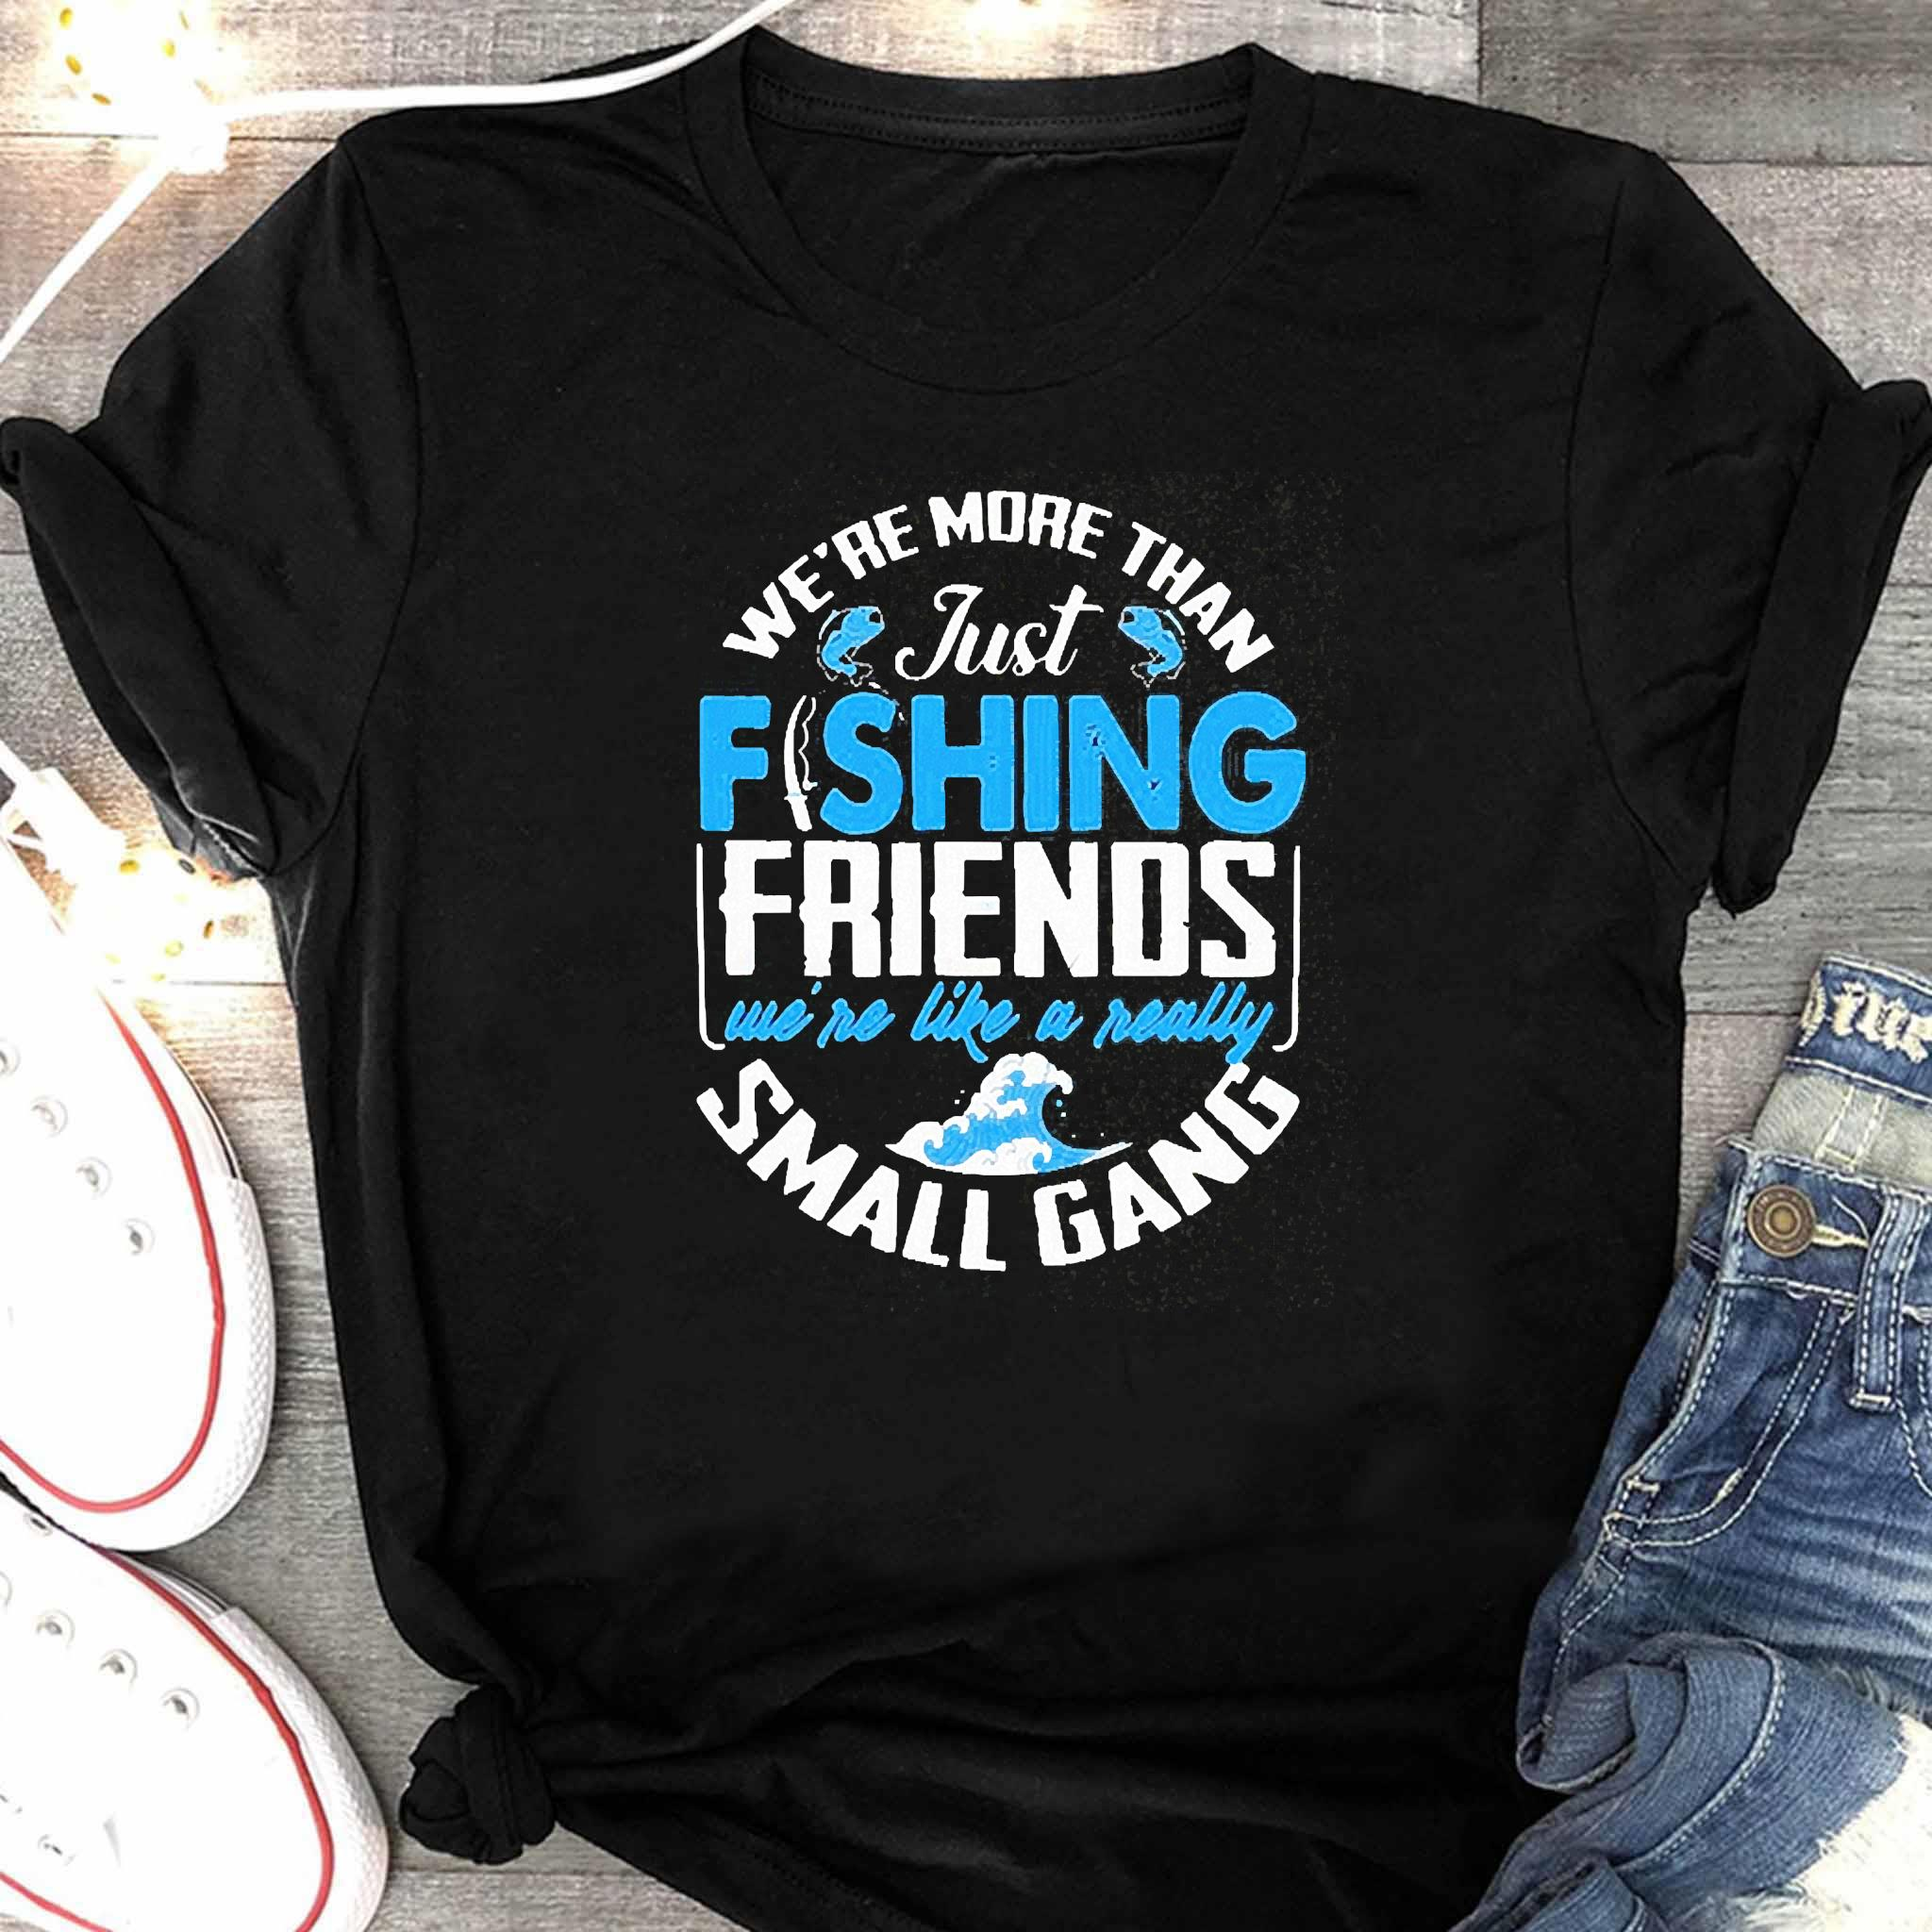 We're More Than Just Fishing Friends We're Like A Really Small Gang Shirt Women's Shirt